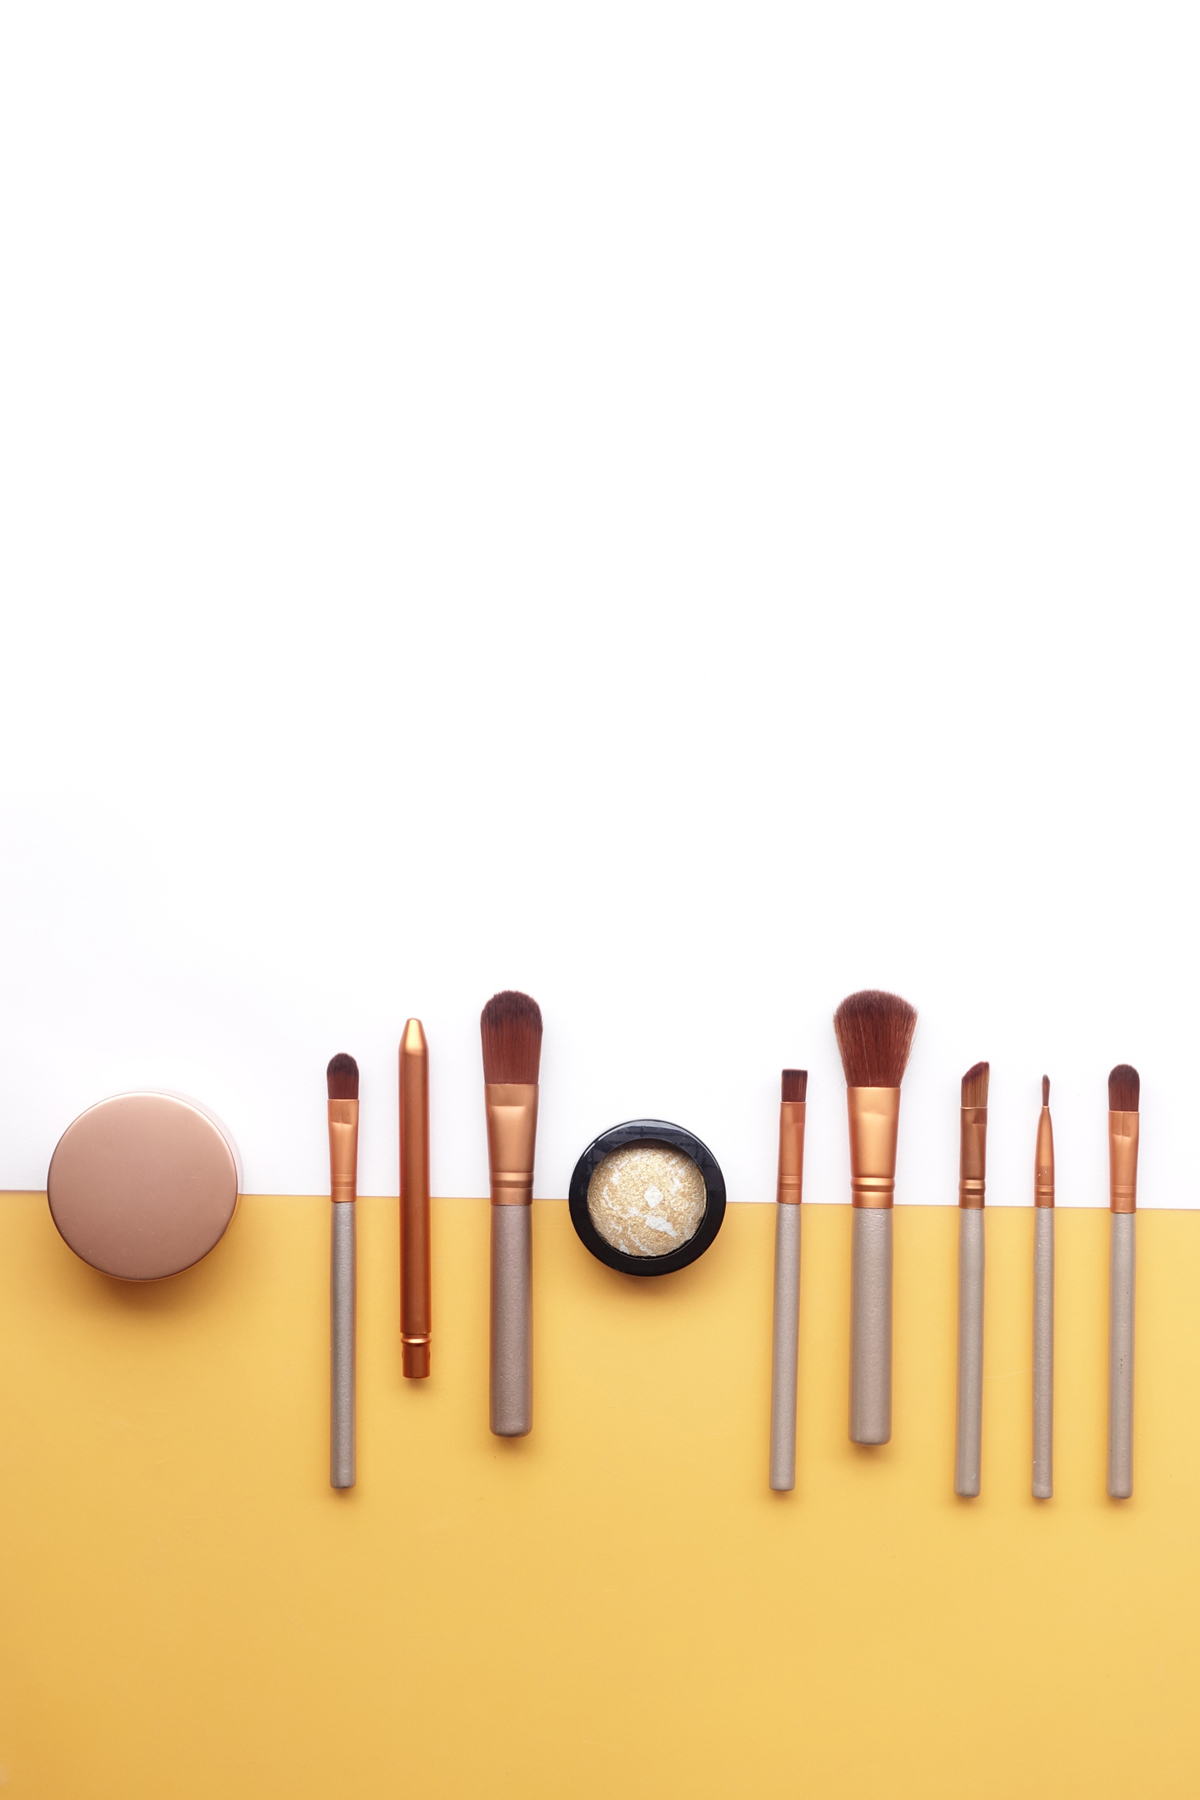 How to Organize Your Beauty Products - Step 2: Sort Everyday Items from Specialty Items